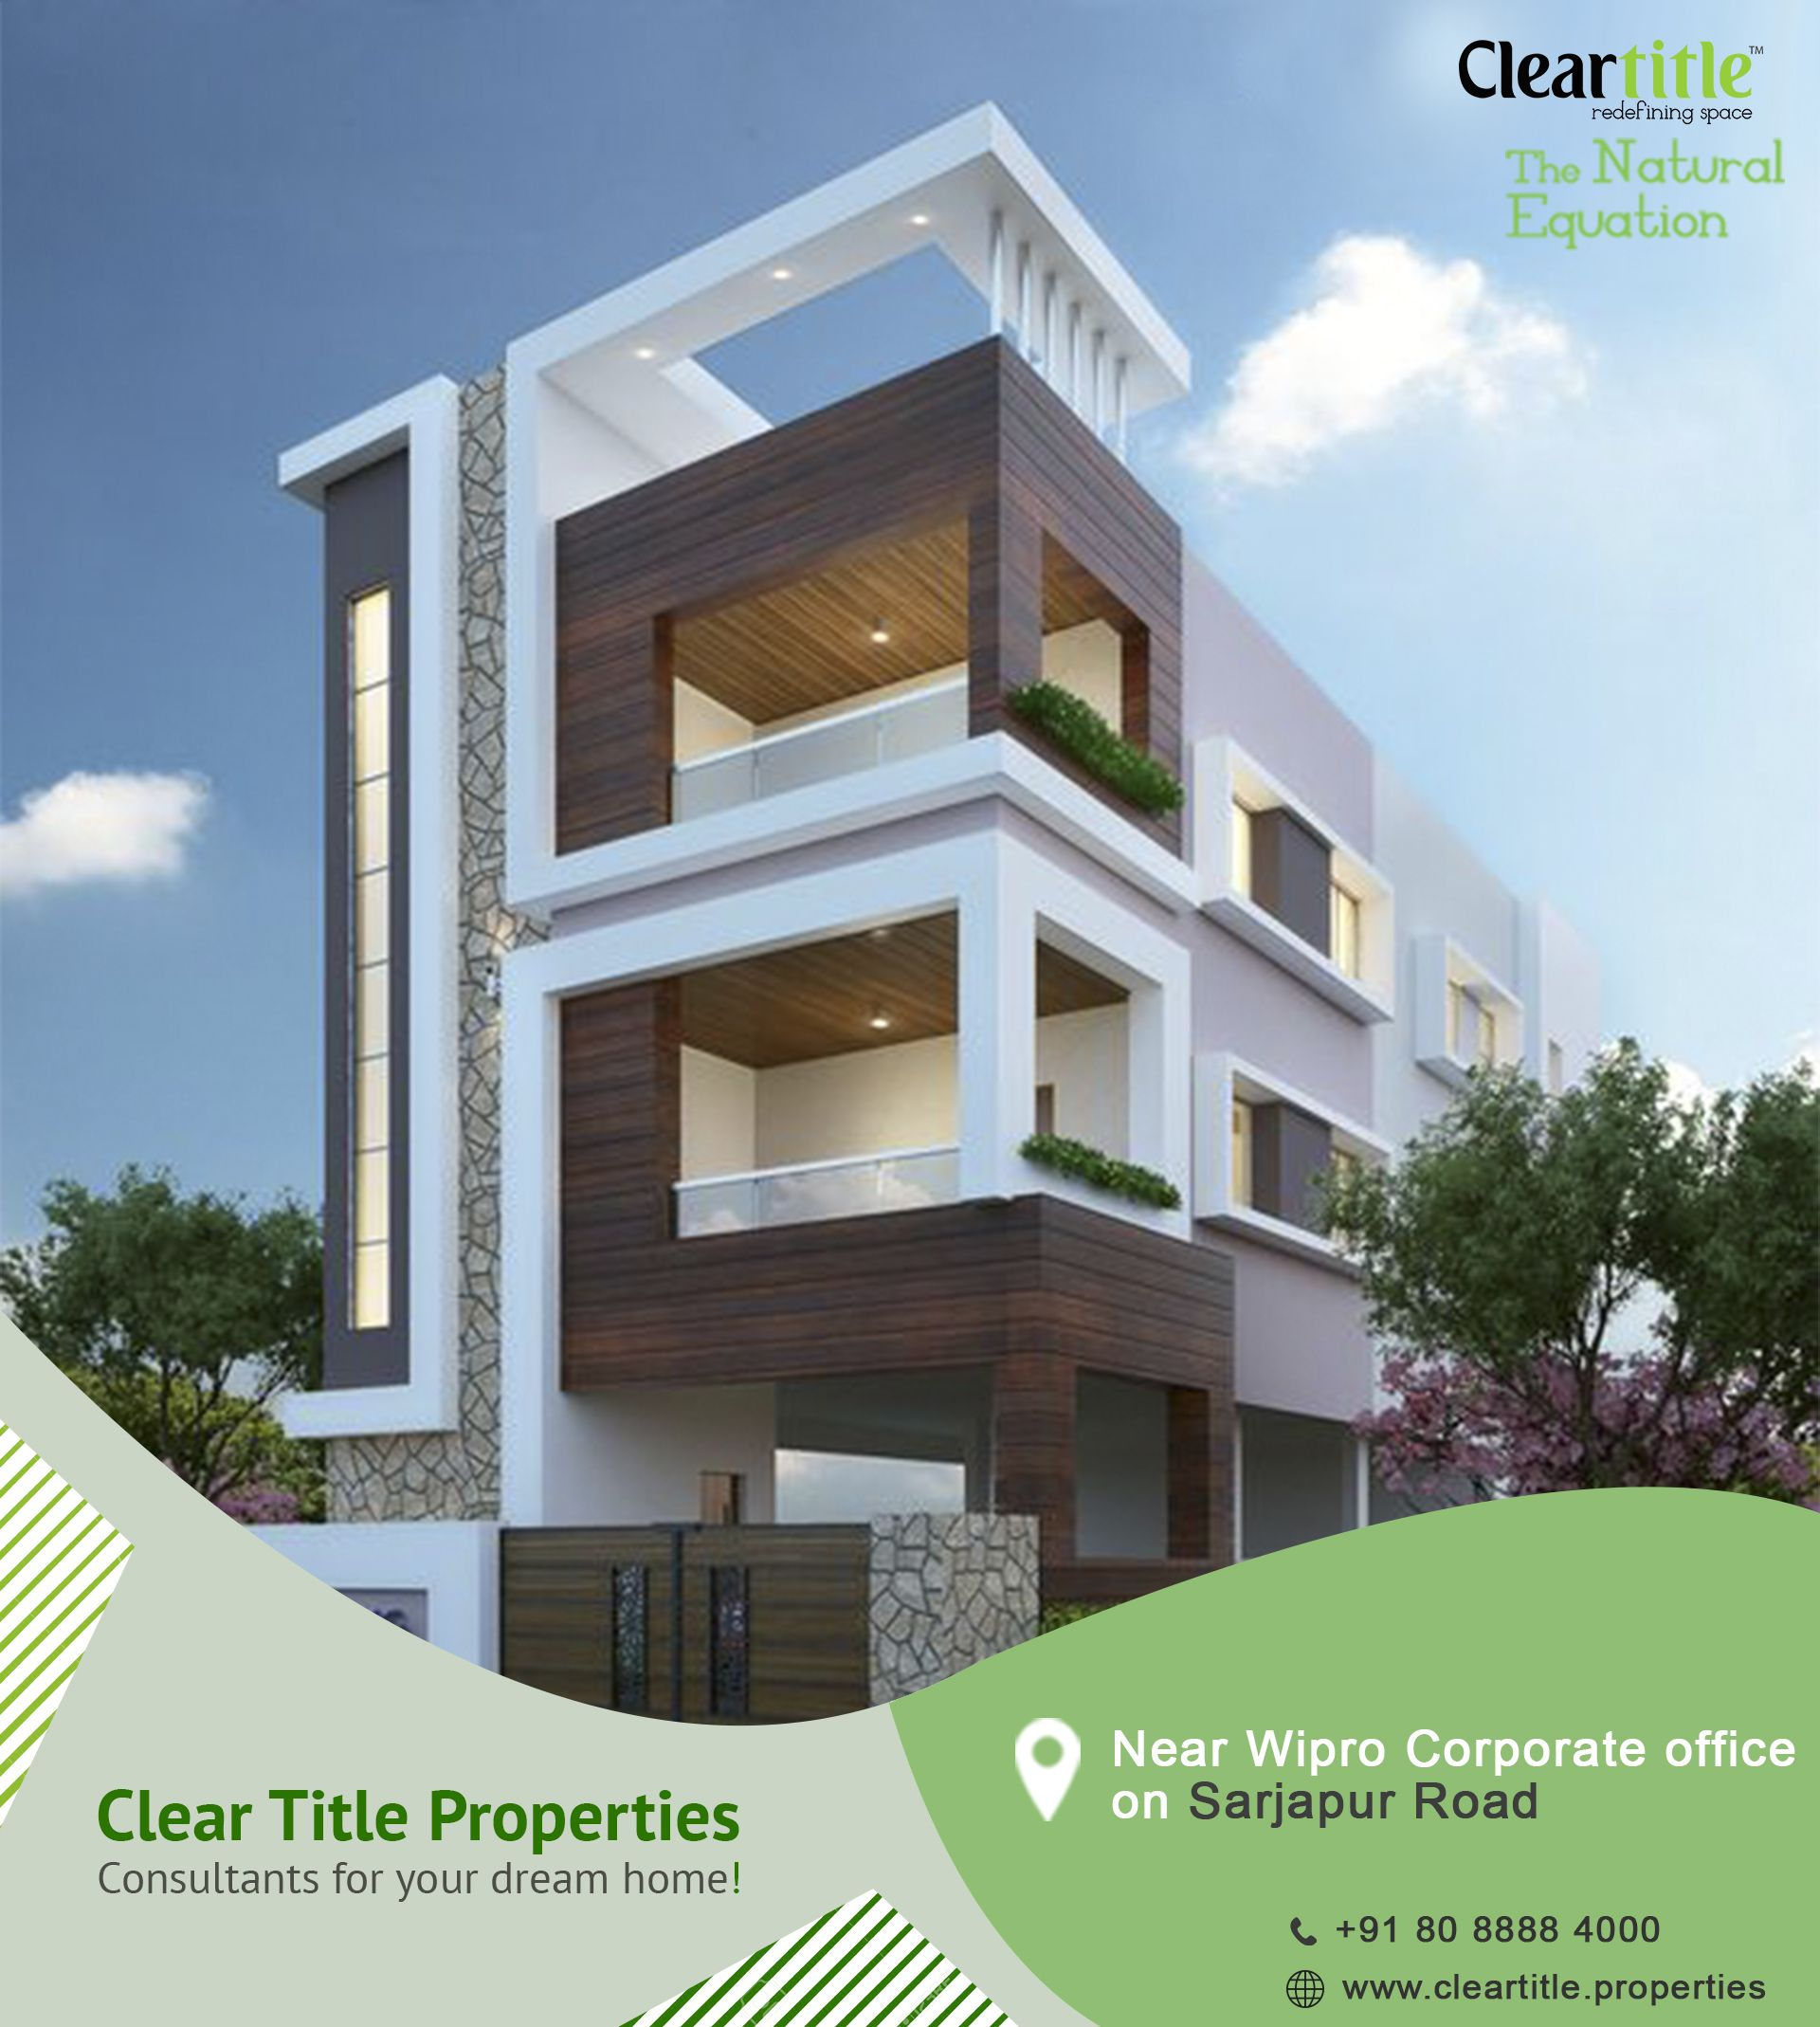 Home Design Ideas Bangalore: Looking To Buy Your Dream Home In The Flourishing City Of